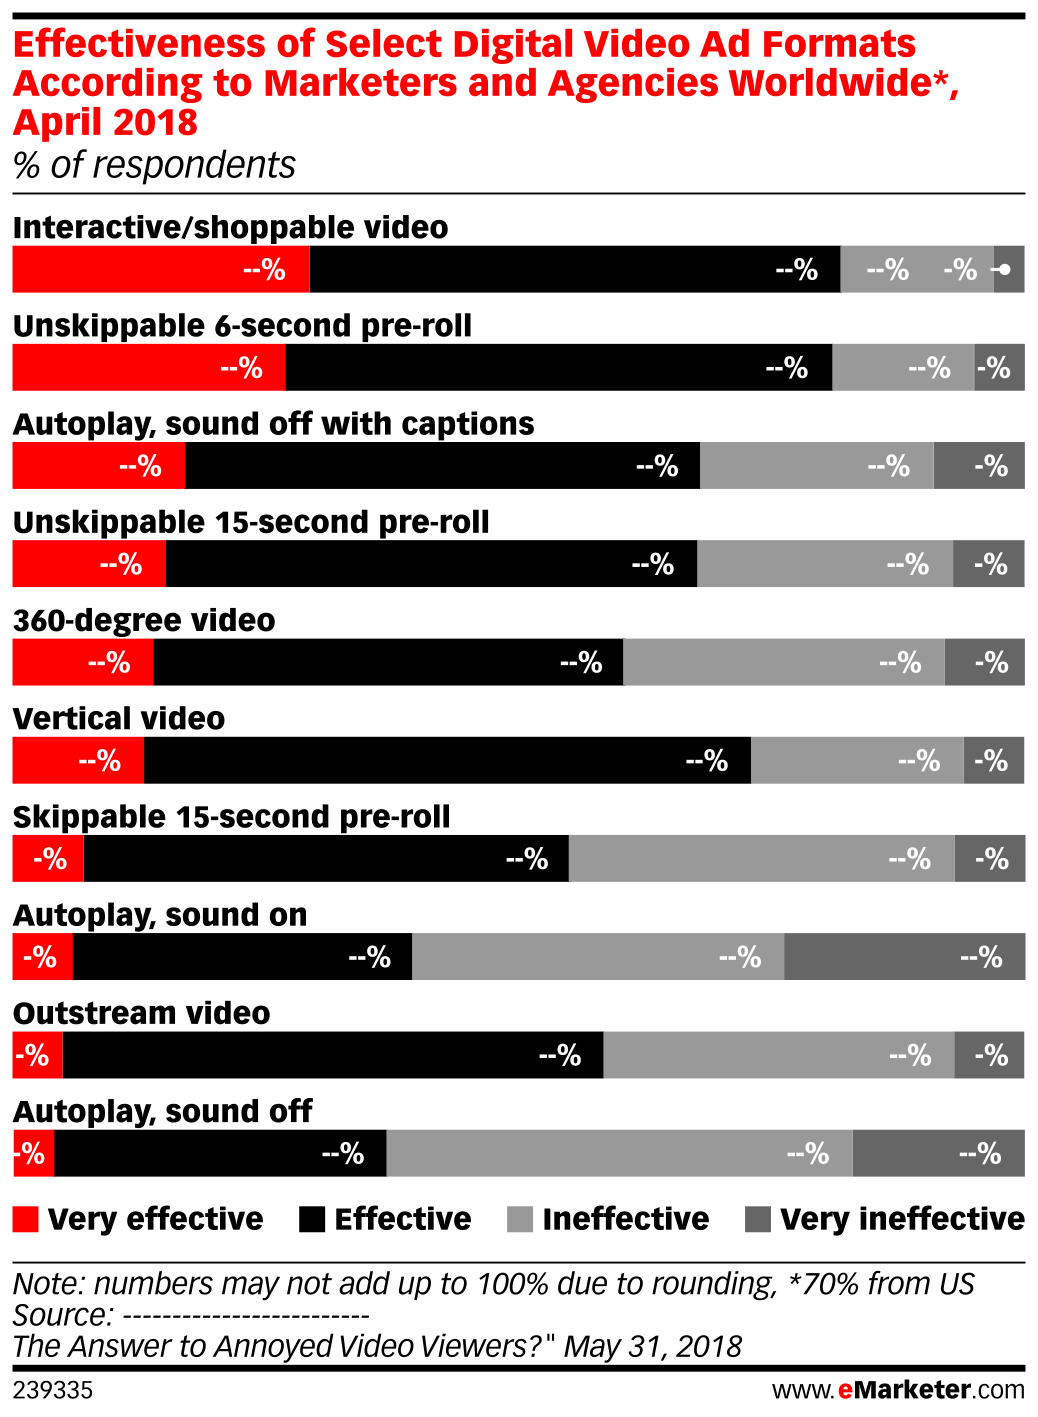 Effectiveness of Select Digital Video Ad Formats According to Marketers and Agencies Worldwide*, April 2018 (% of respondents)